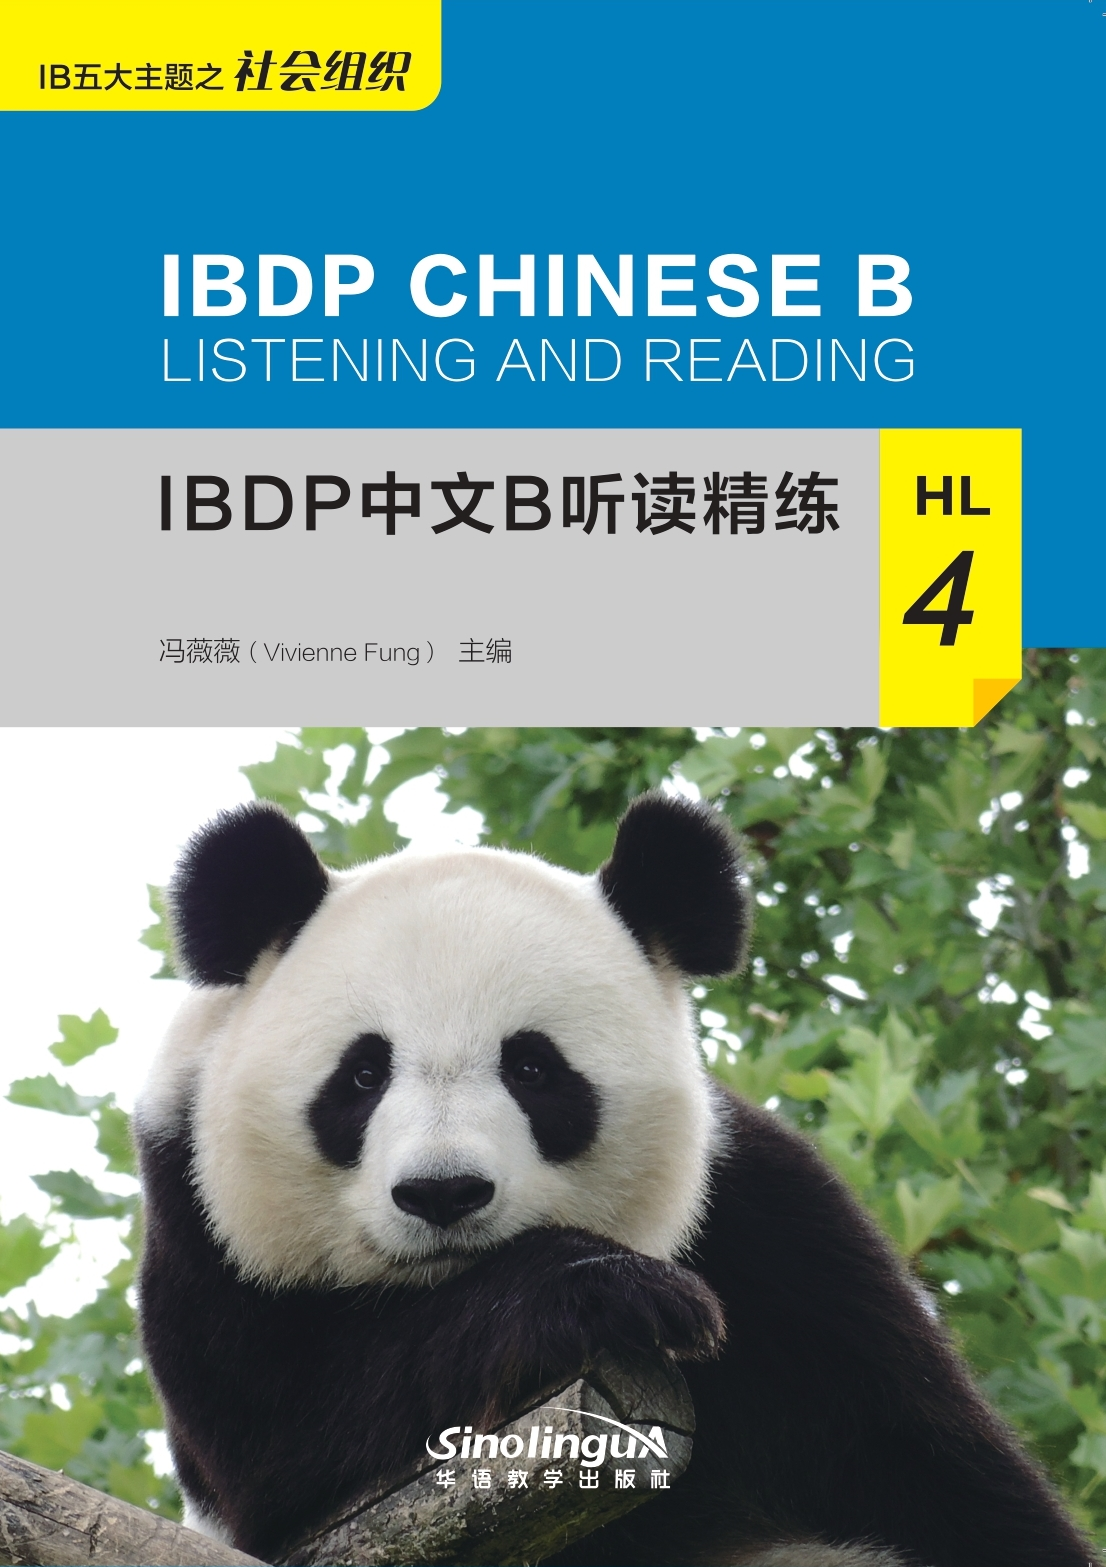 IBDP Chinese B Listening and Reading ·HL·4